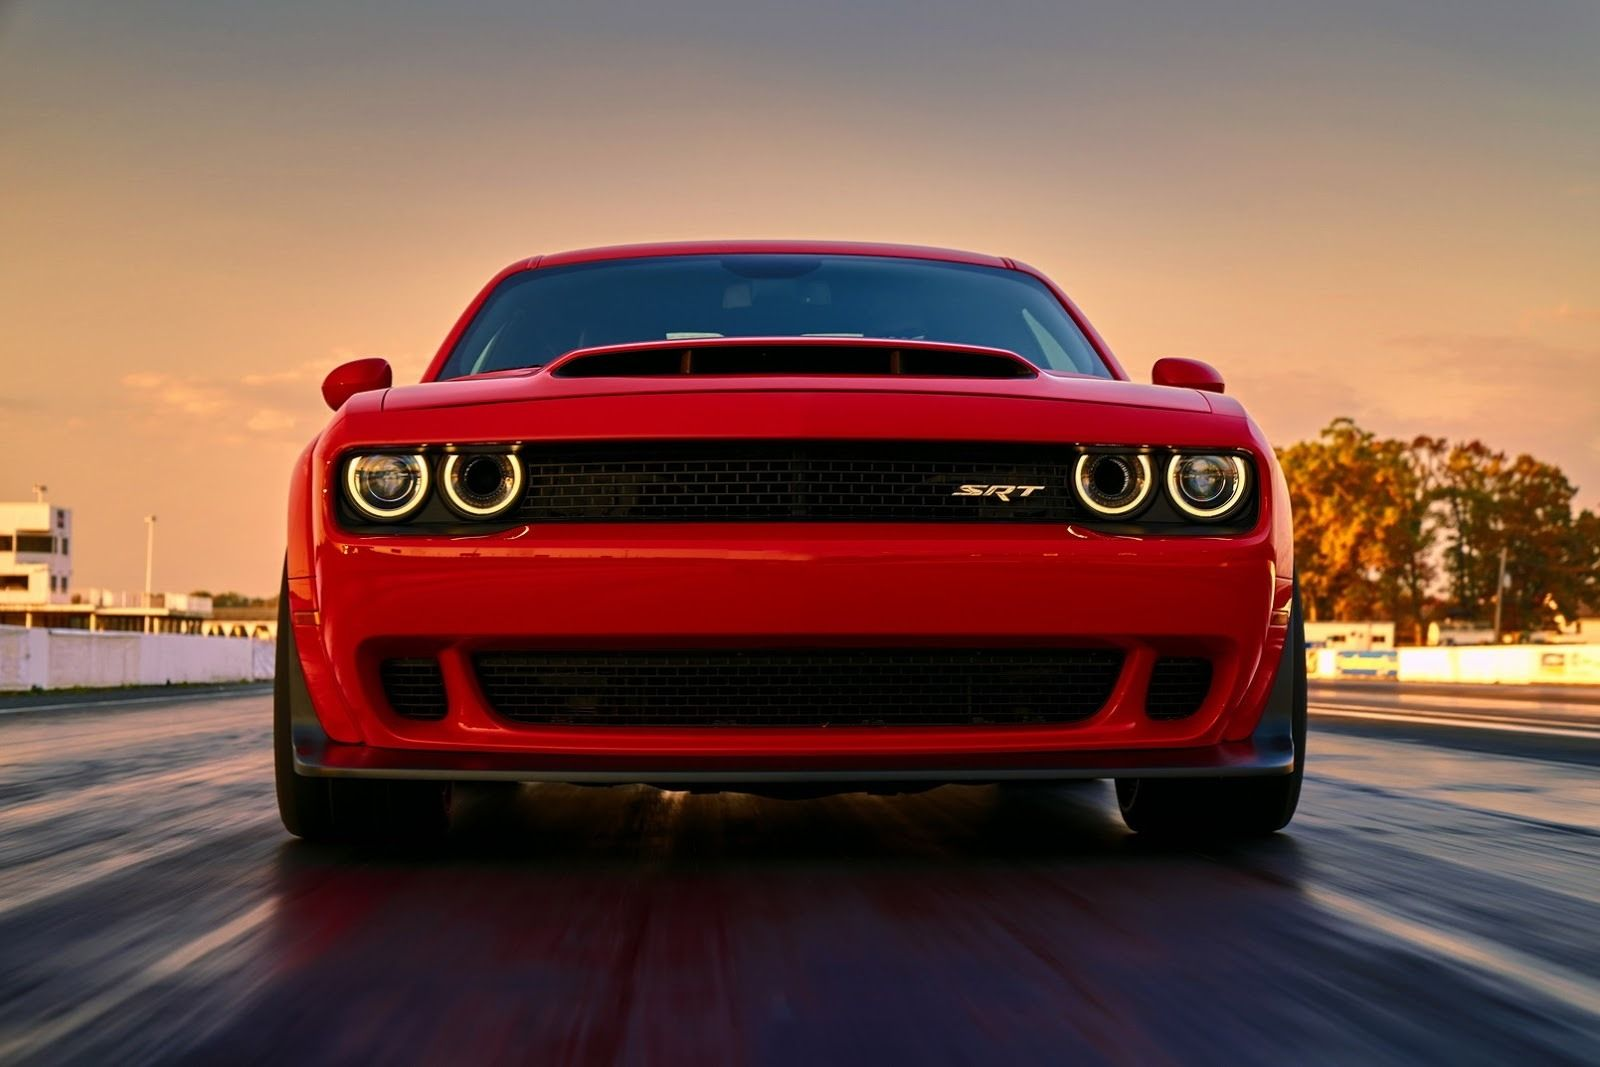 2019 dodge challenger srt redesign price and review all car rh pinterest ca